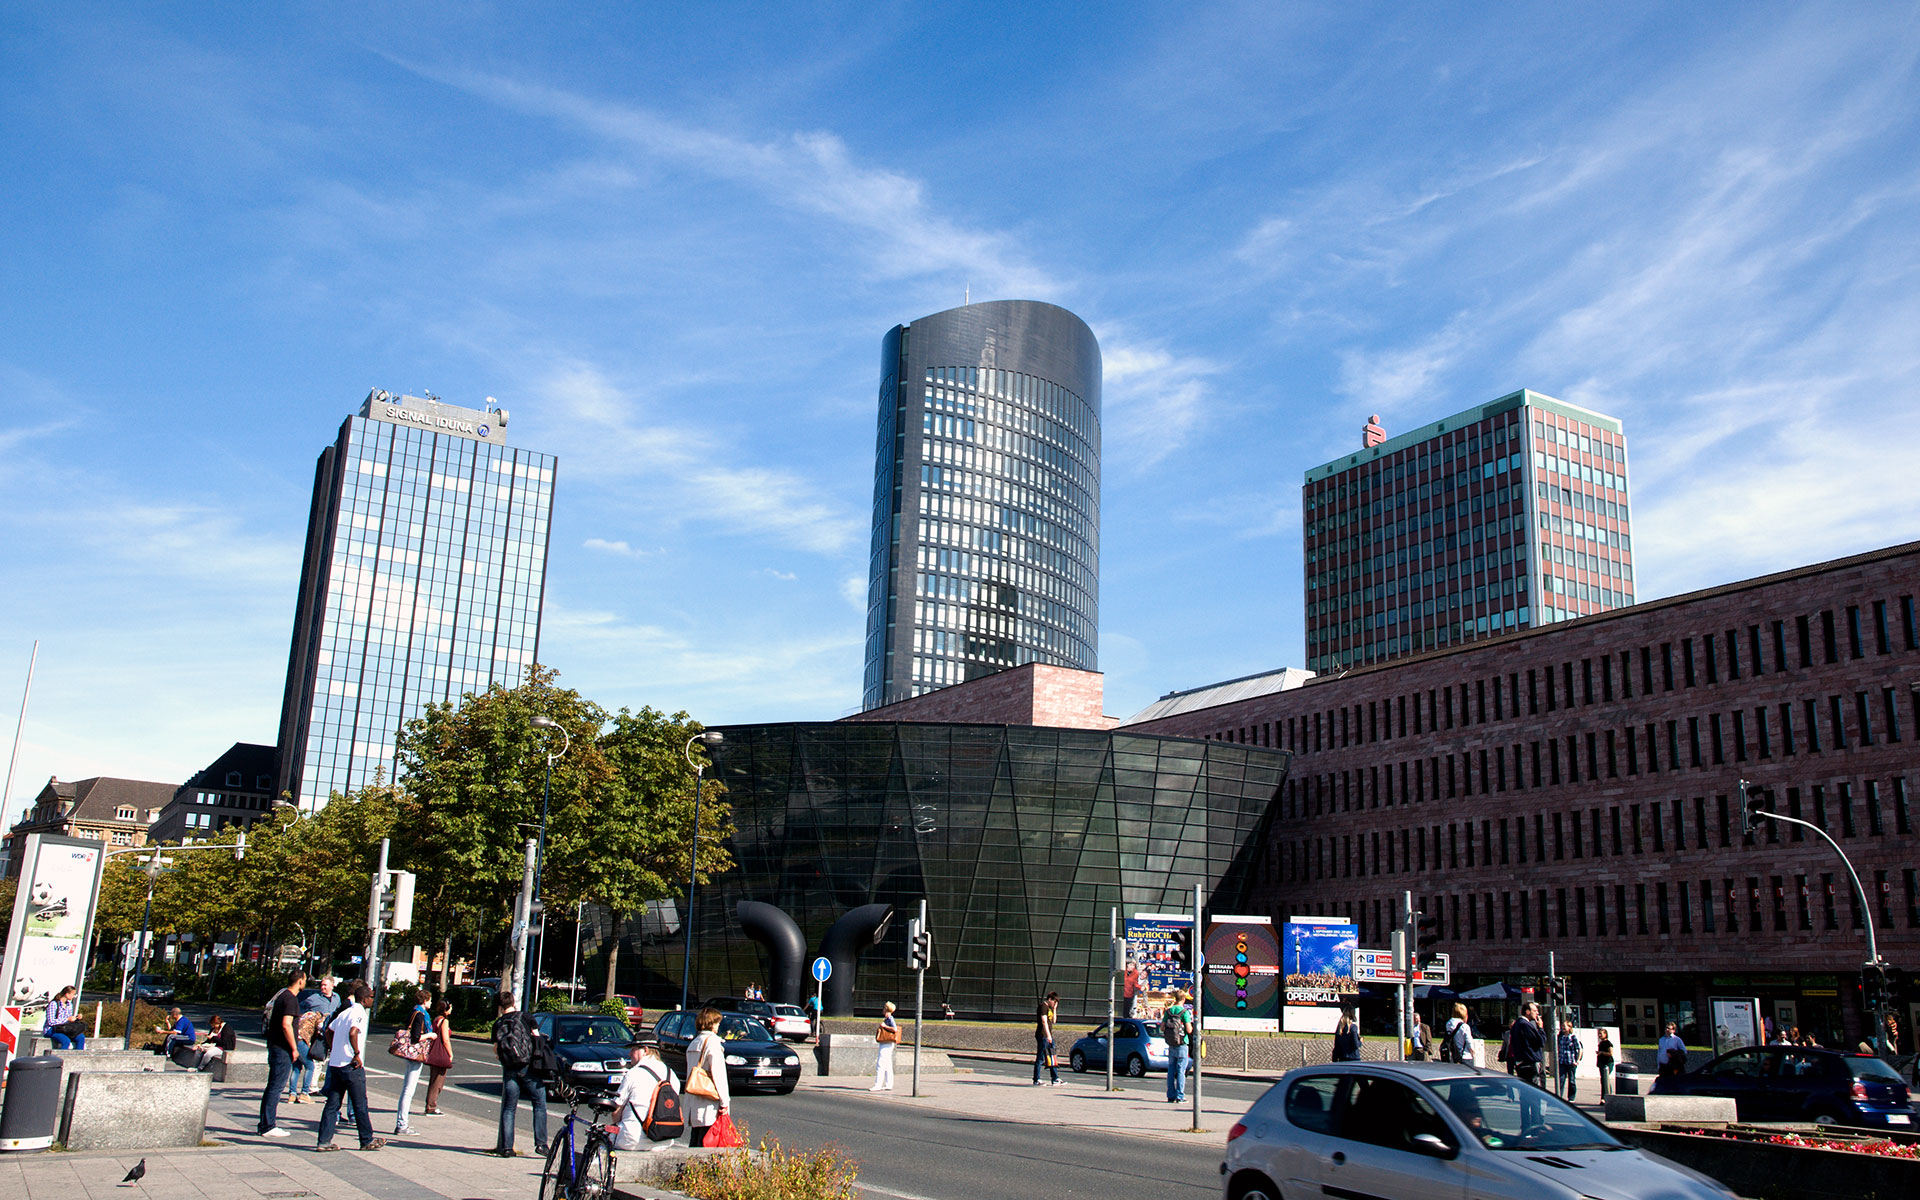 Dortmund secures a direct rail link with Brussels and Paris from December 2015 (photo © Peter Lovás / dreamstime.com)